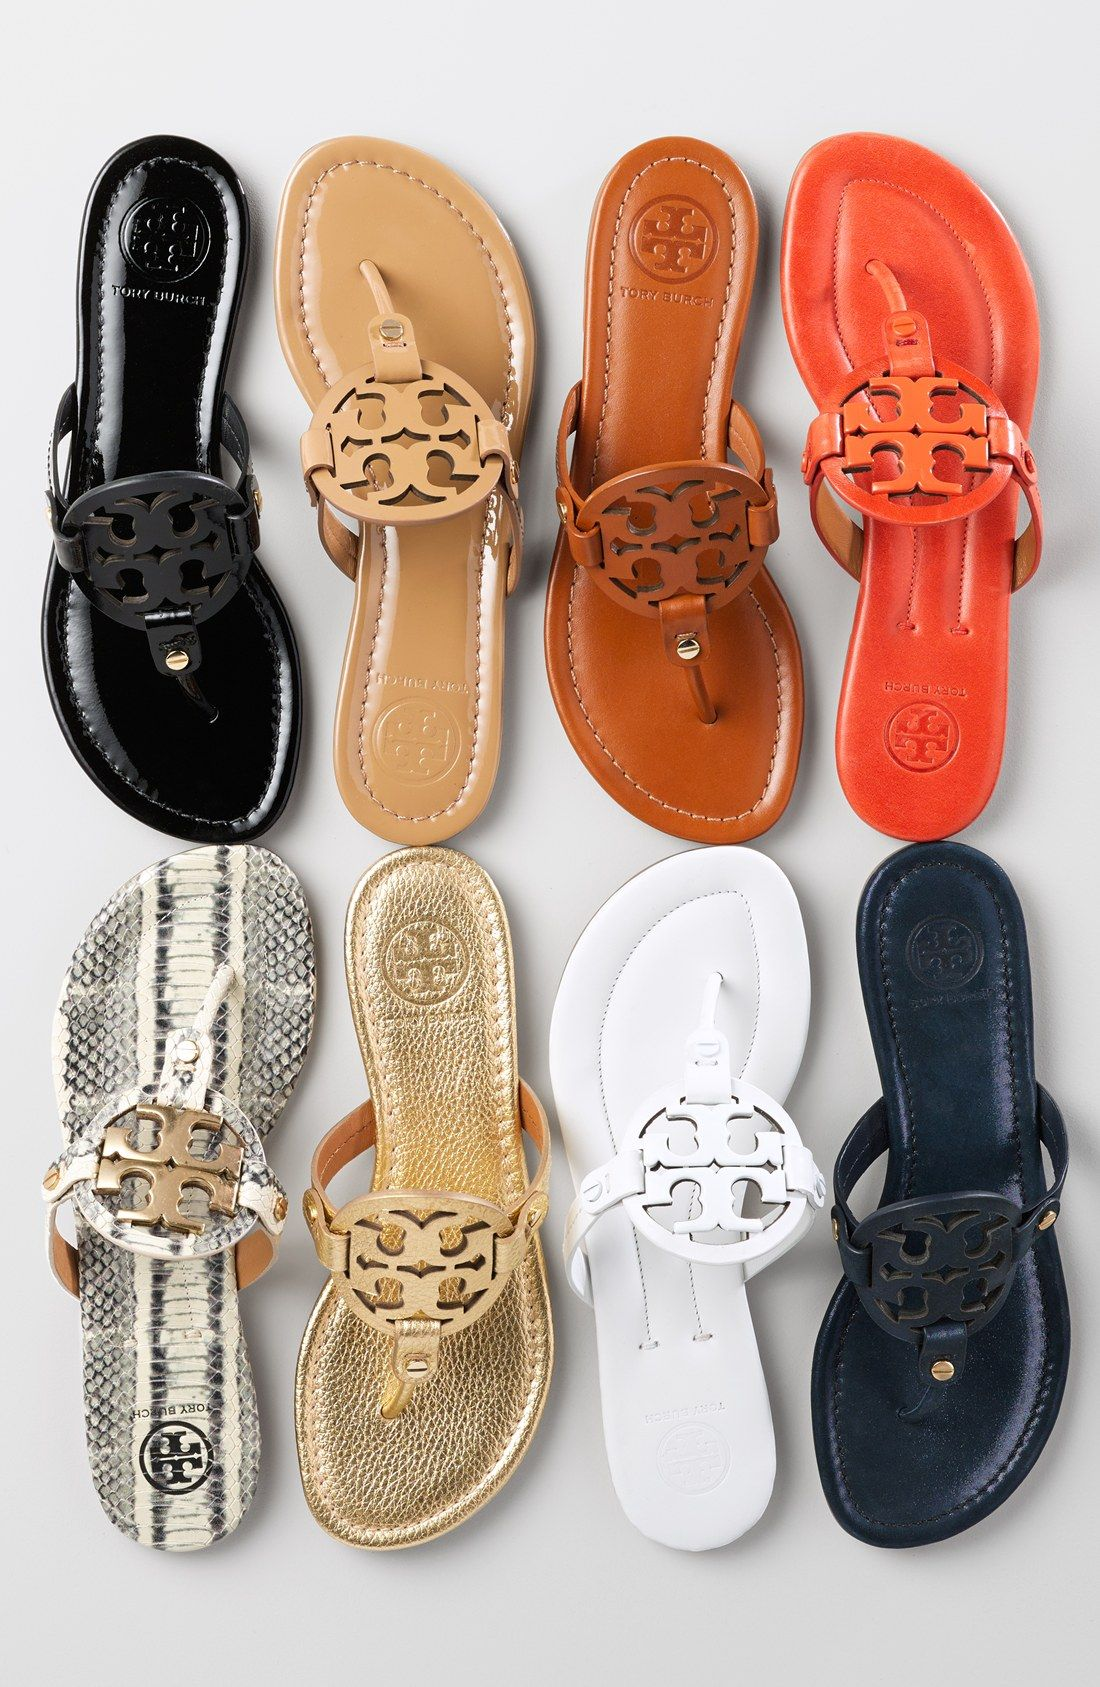 9c2517dcf68cf Tory Burch Miller sandals